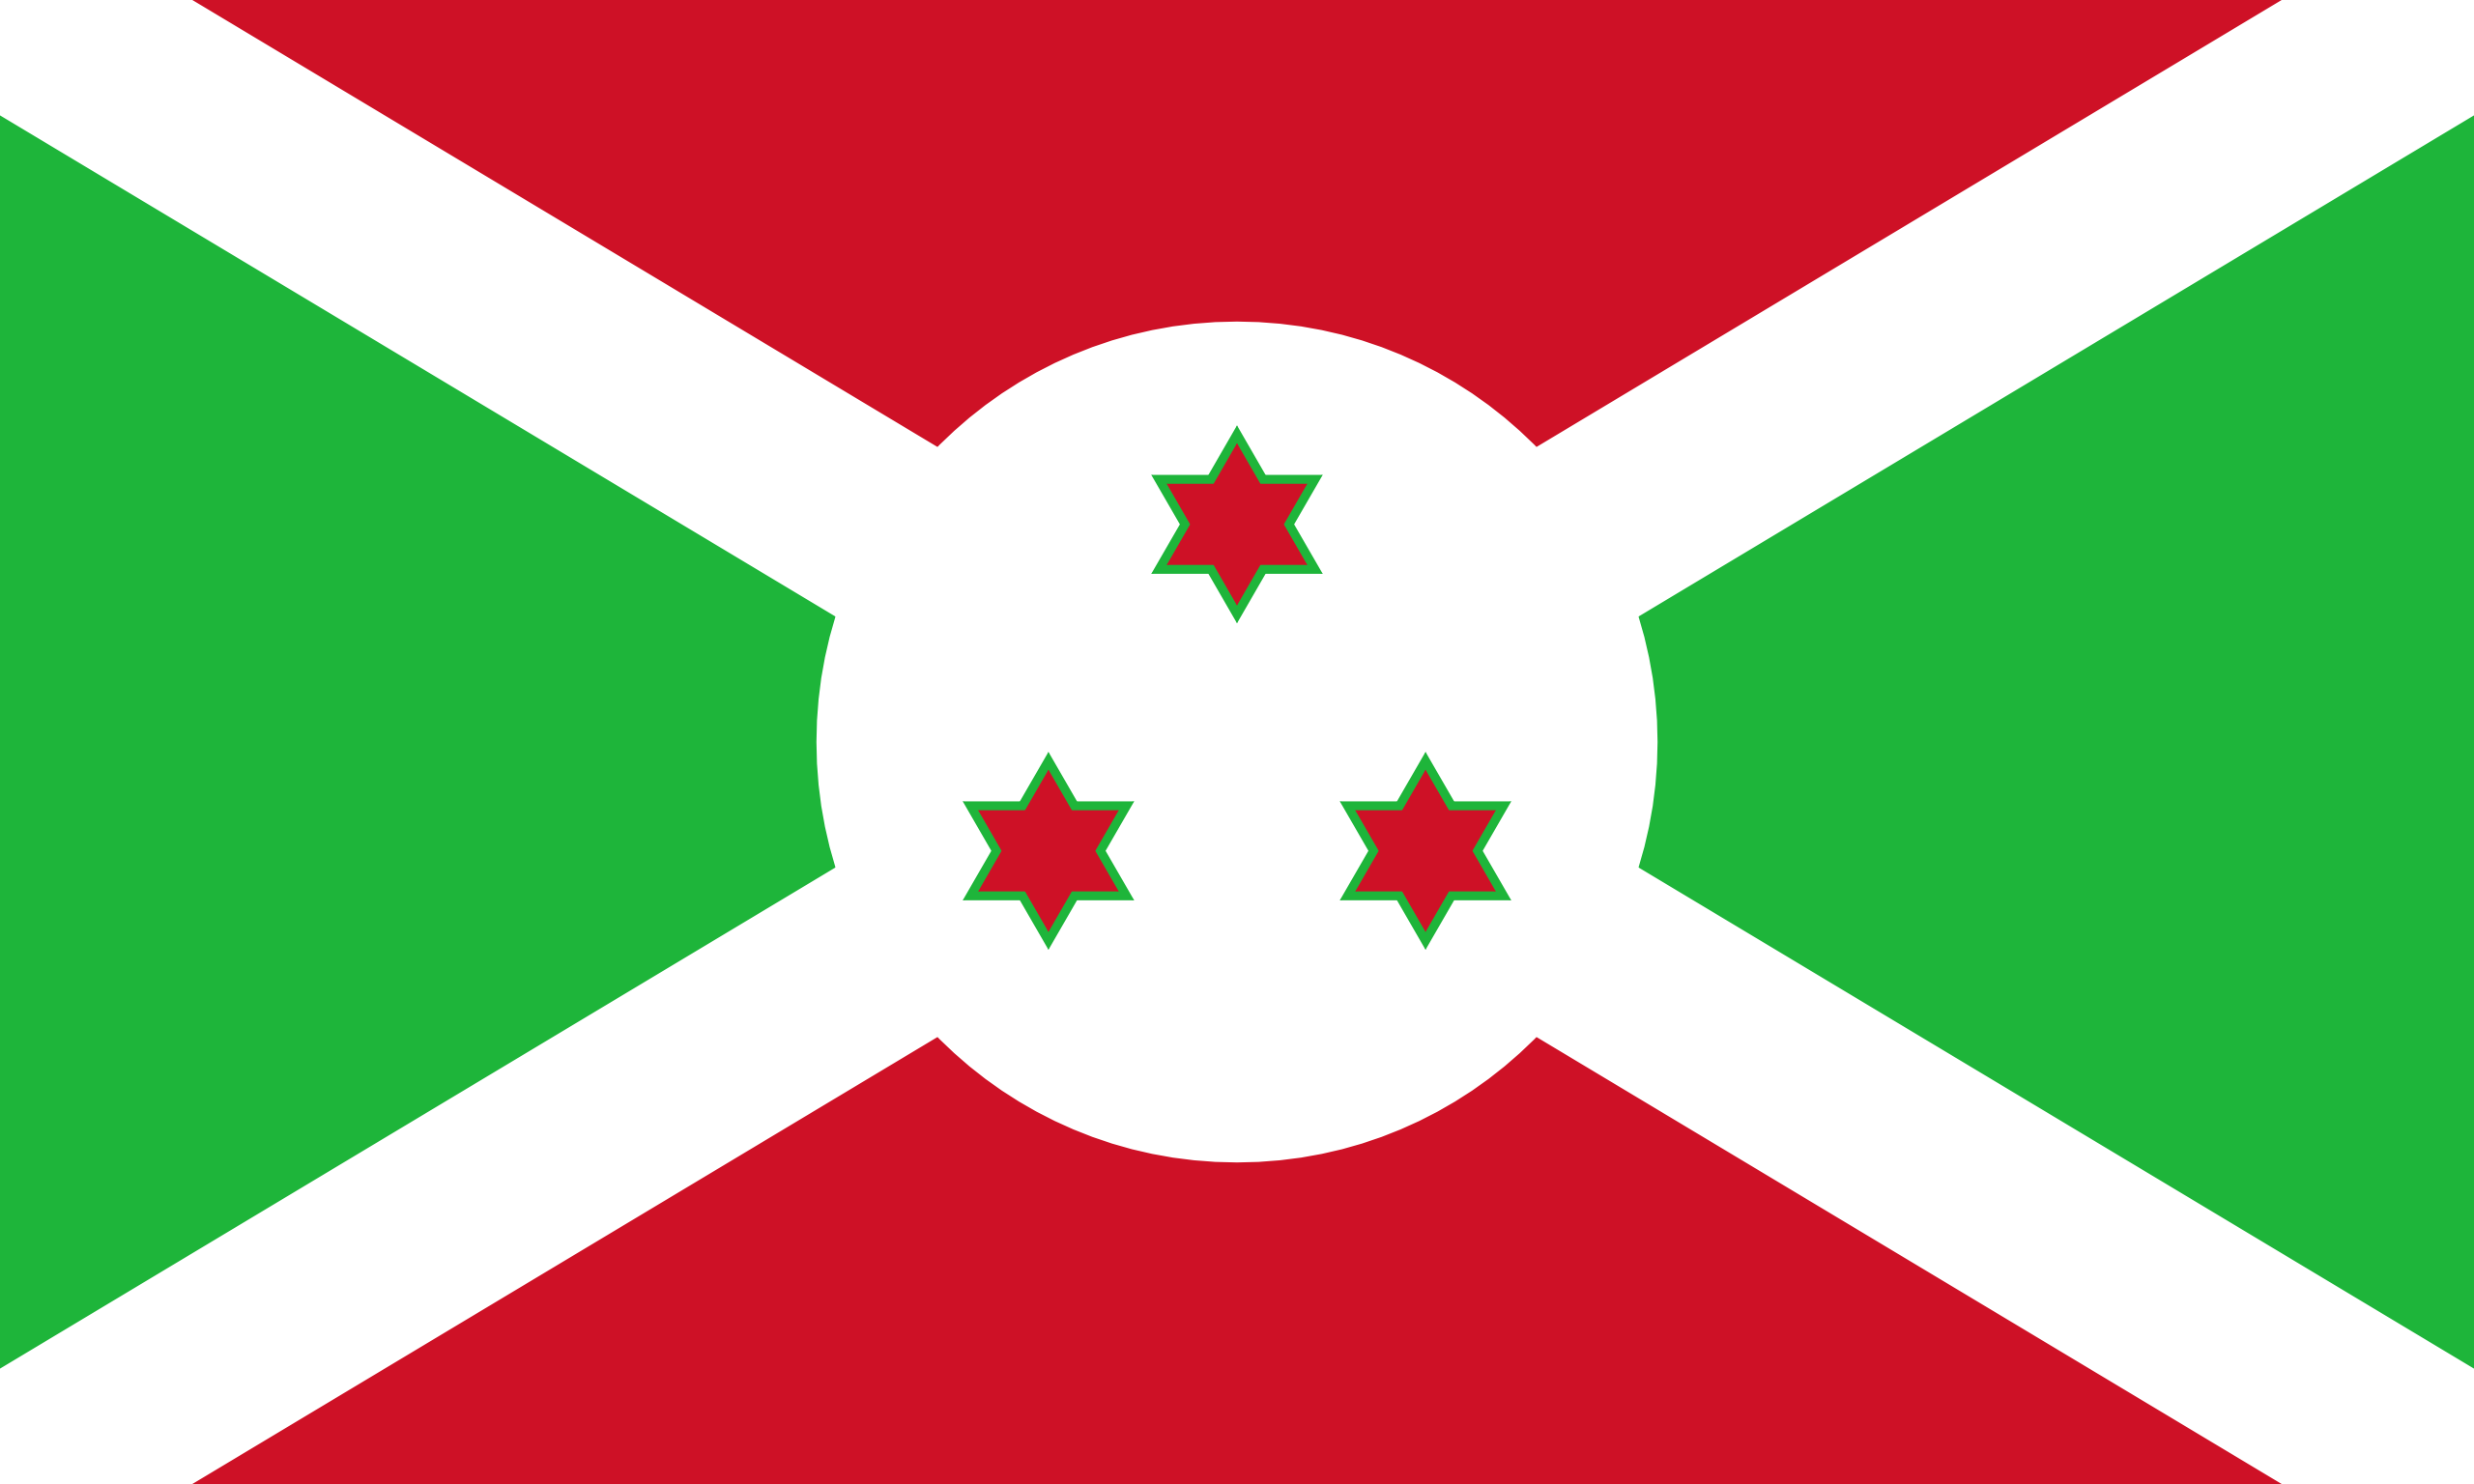 EMBASSY AND CONSULATE OF BURUNDI